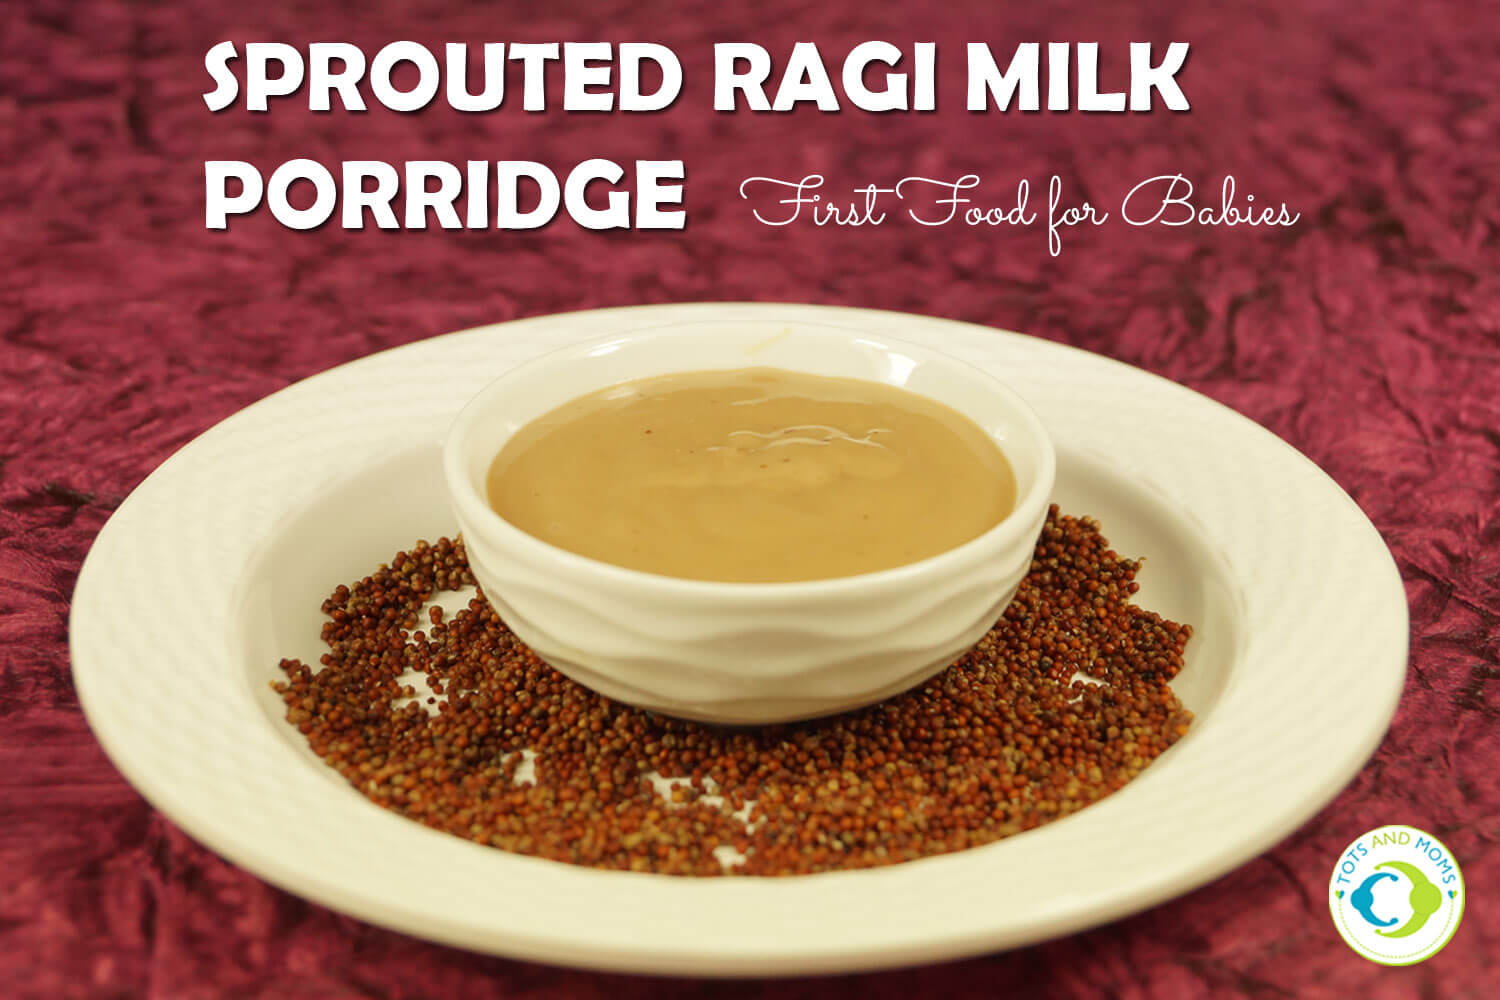 How to prepare homemade sprouted ragi milk